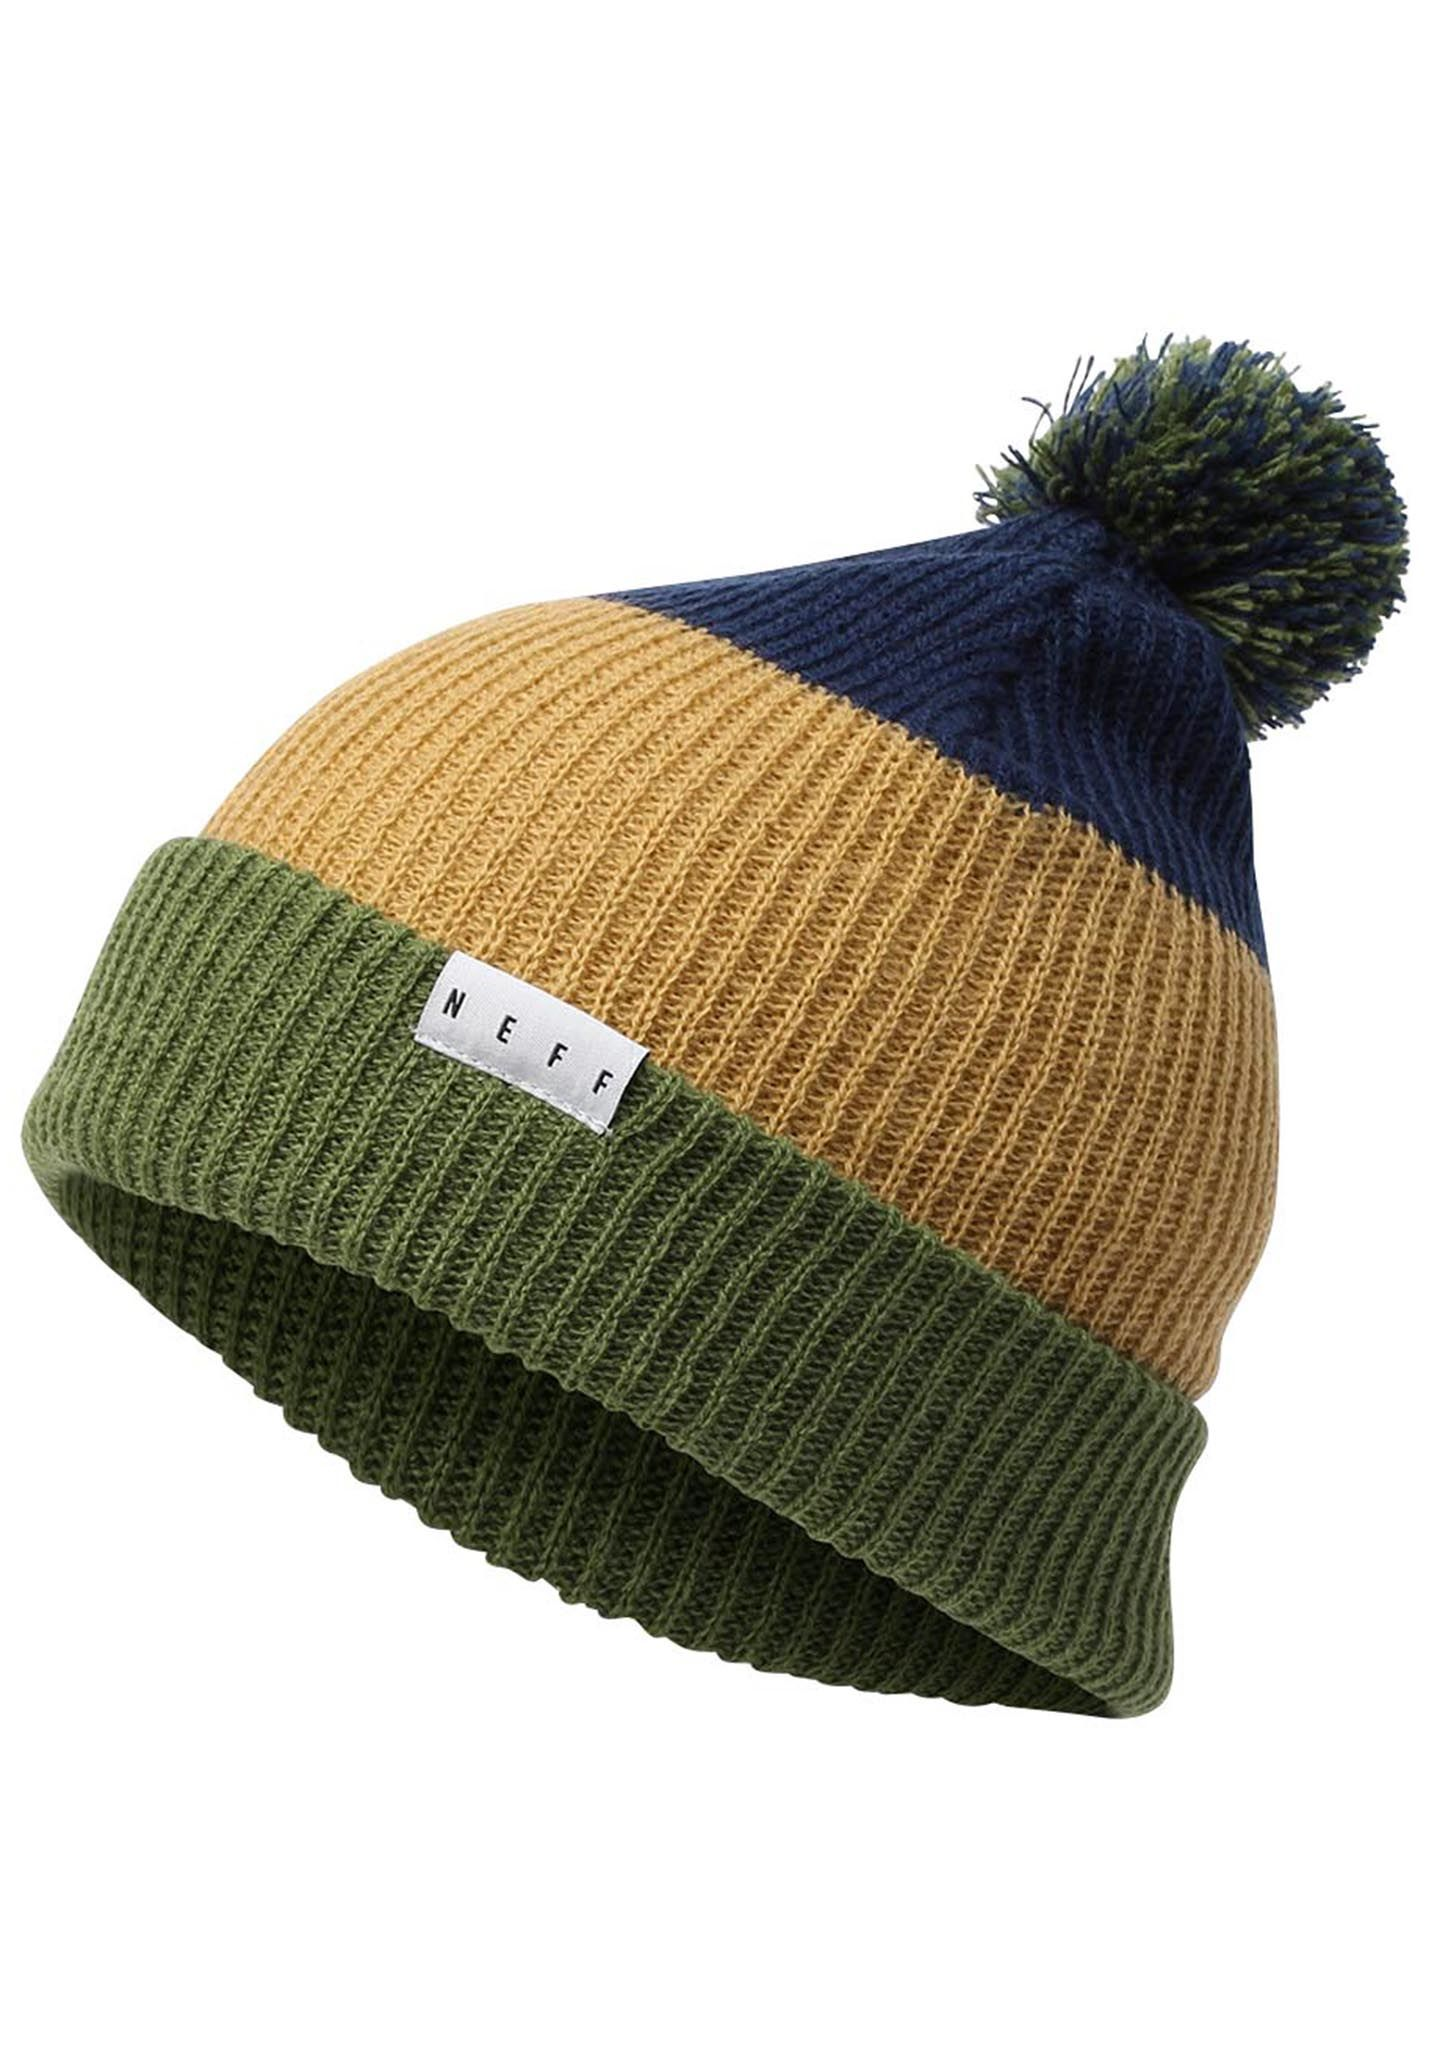 NEFF Snappy - Beanie - Multicolor - Planet Sports 95a47958dcc